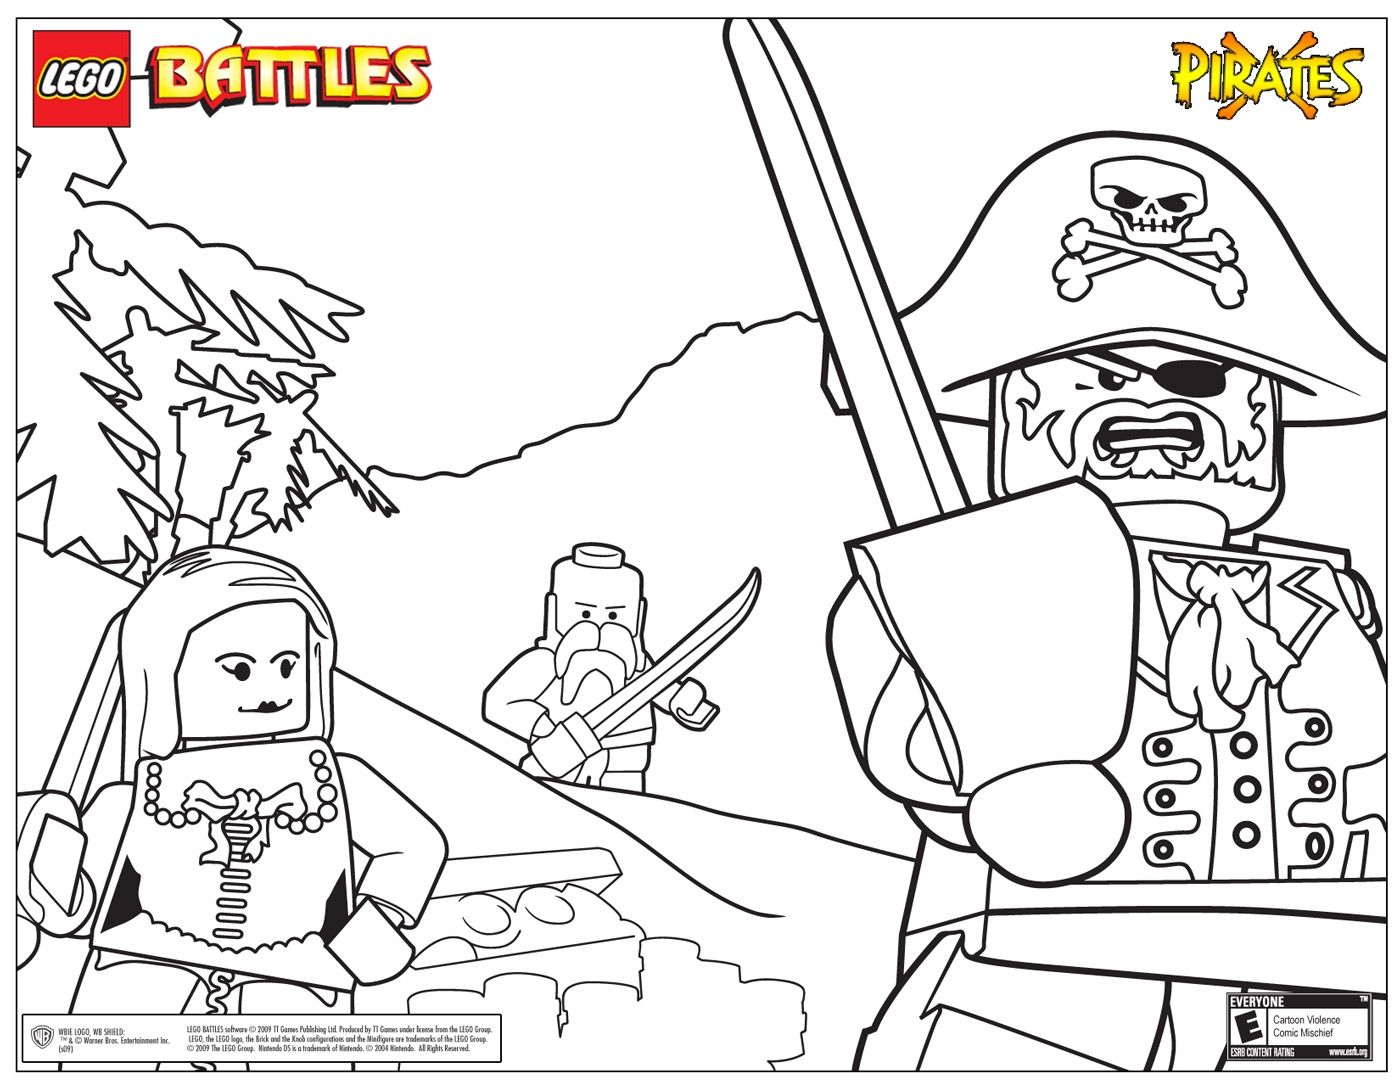 22+ Lego indiana jones coloring pages info